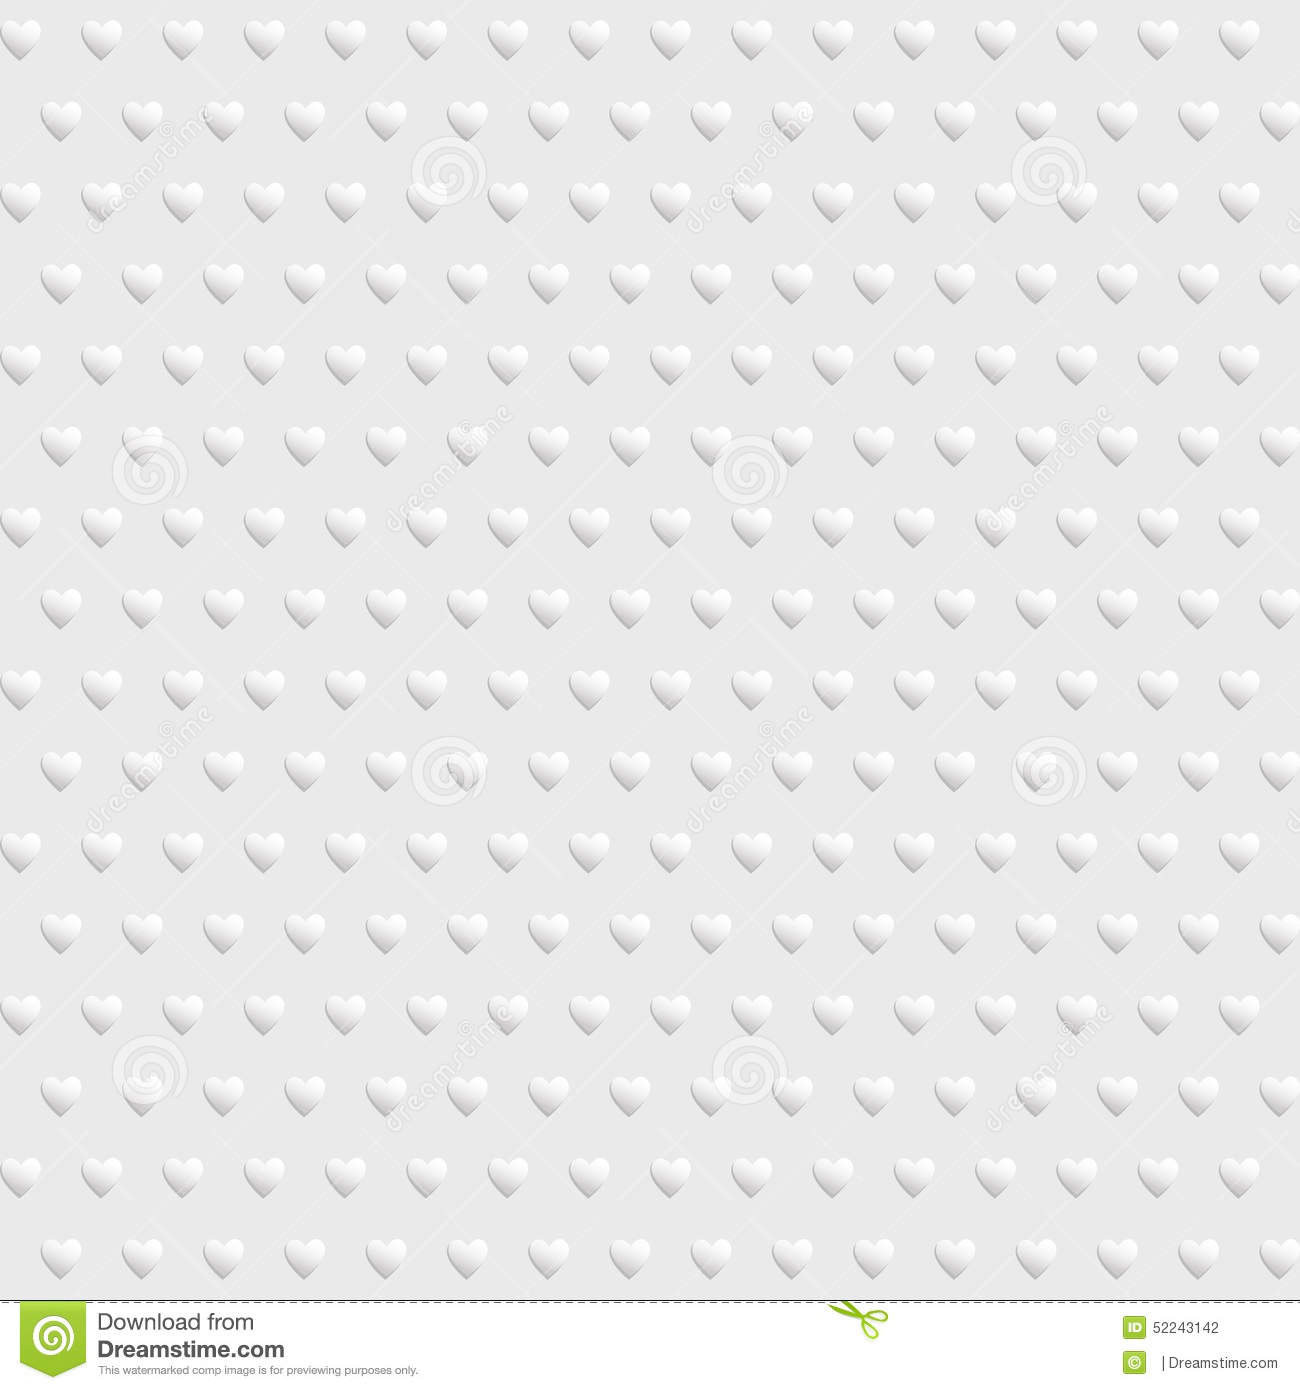 White seamless texture with hearts